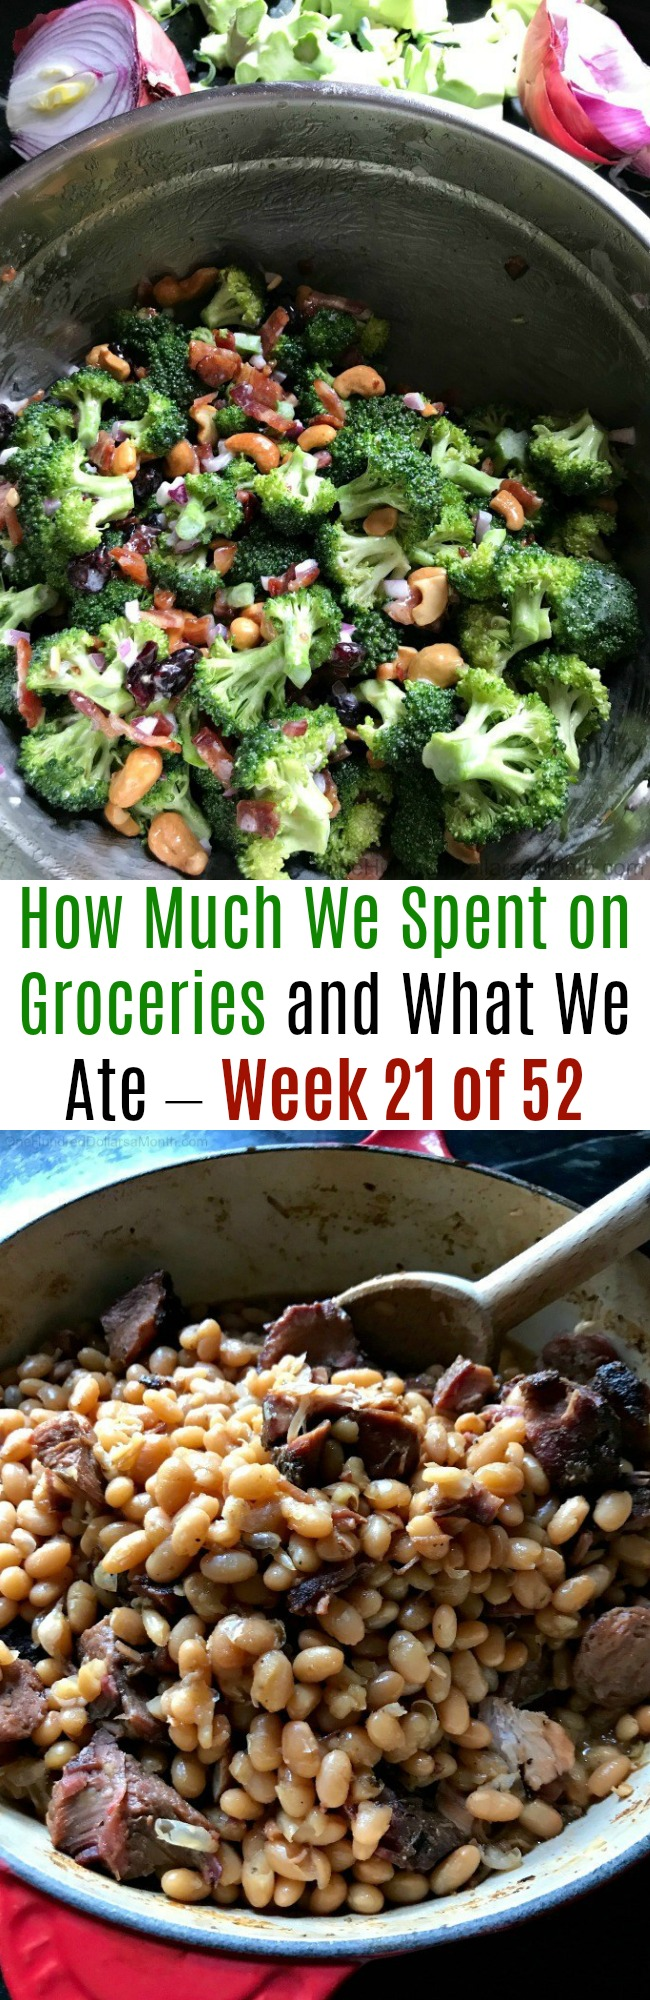 How Much We Spent on Groceries and What We Ate – Week 21 of 52